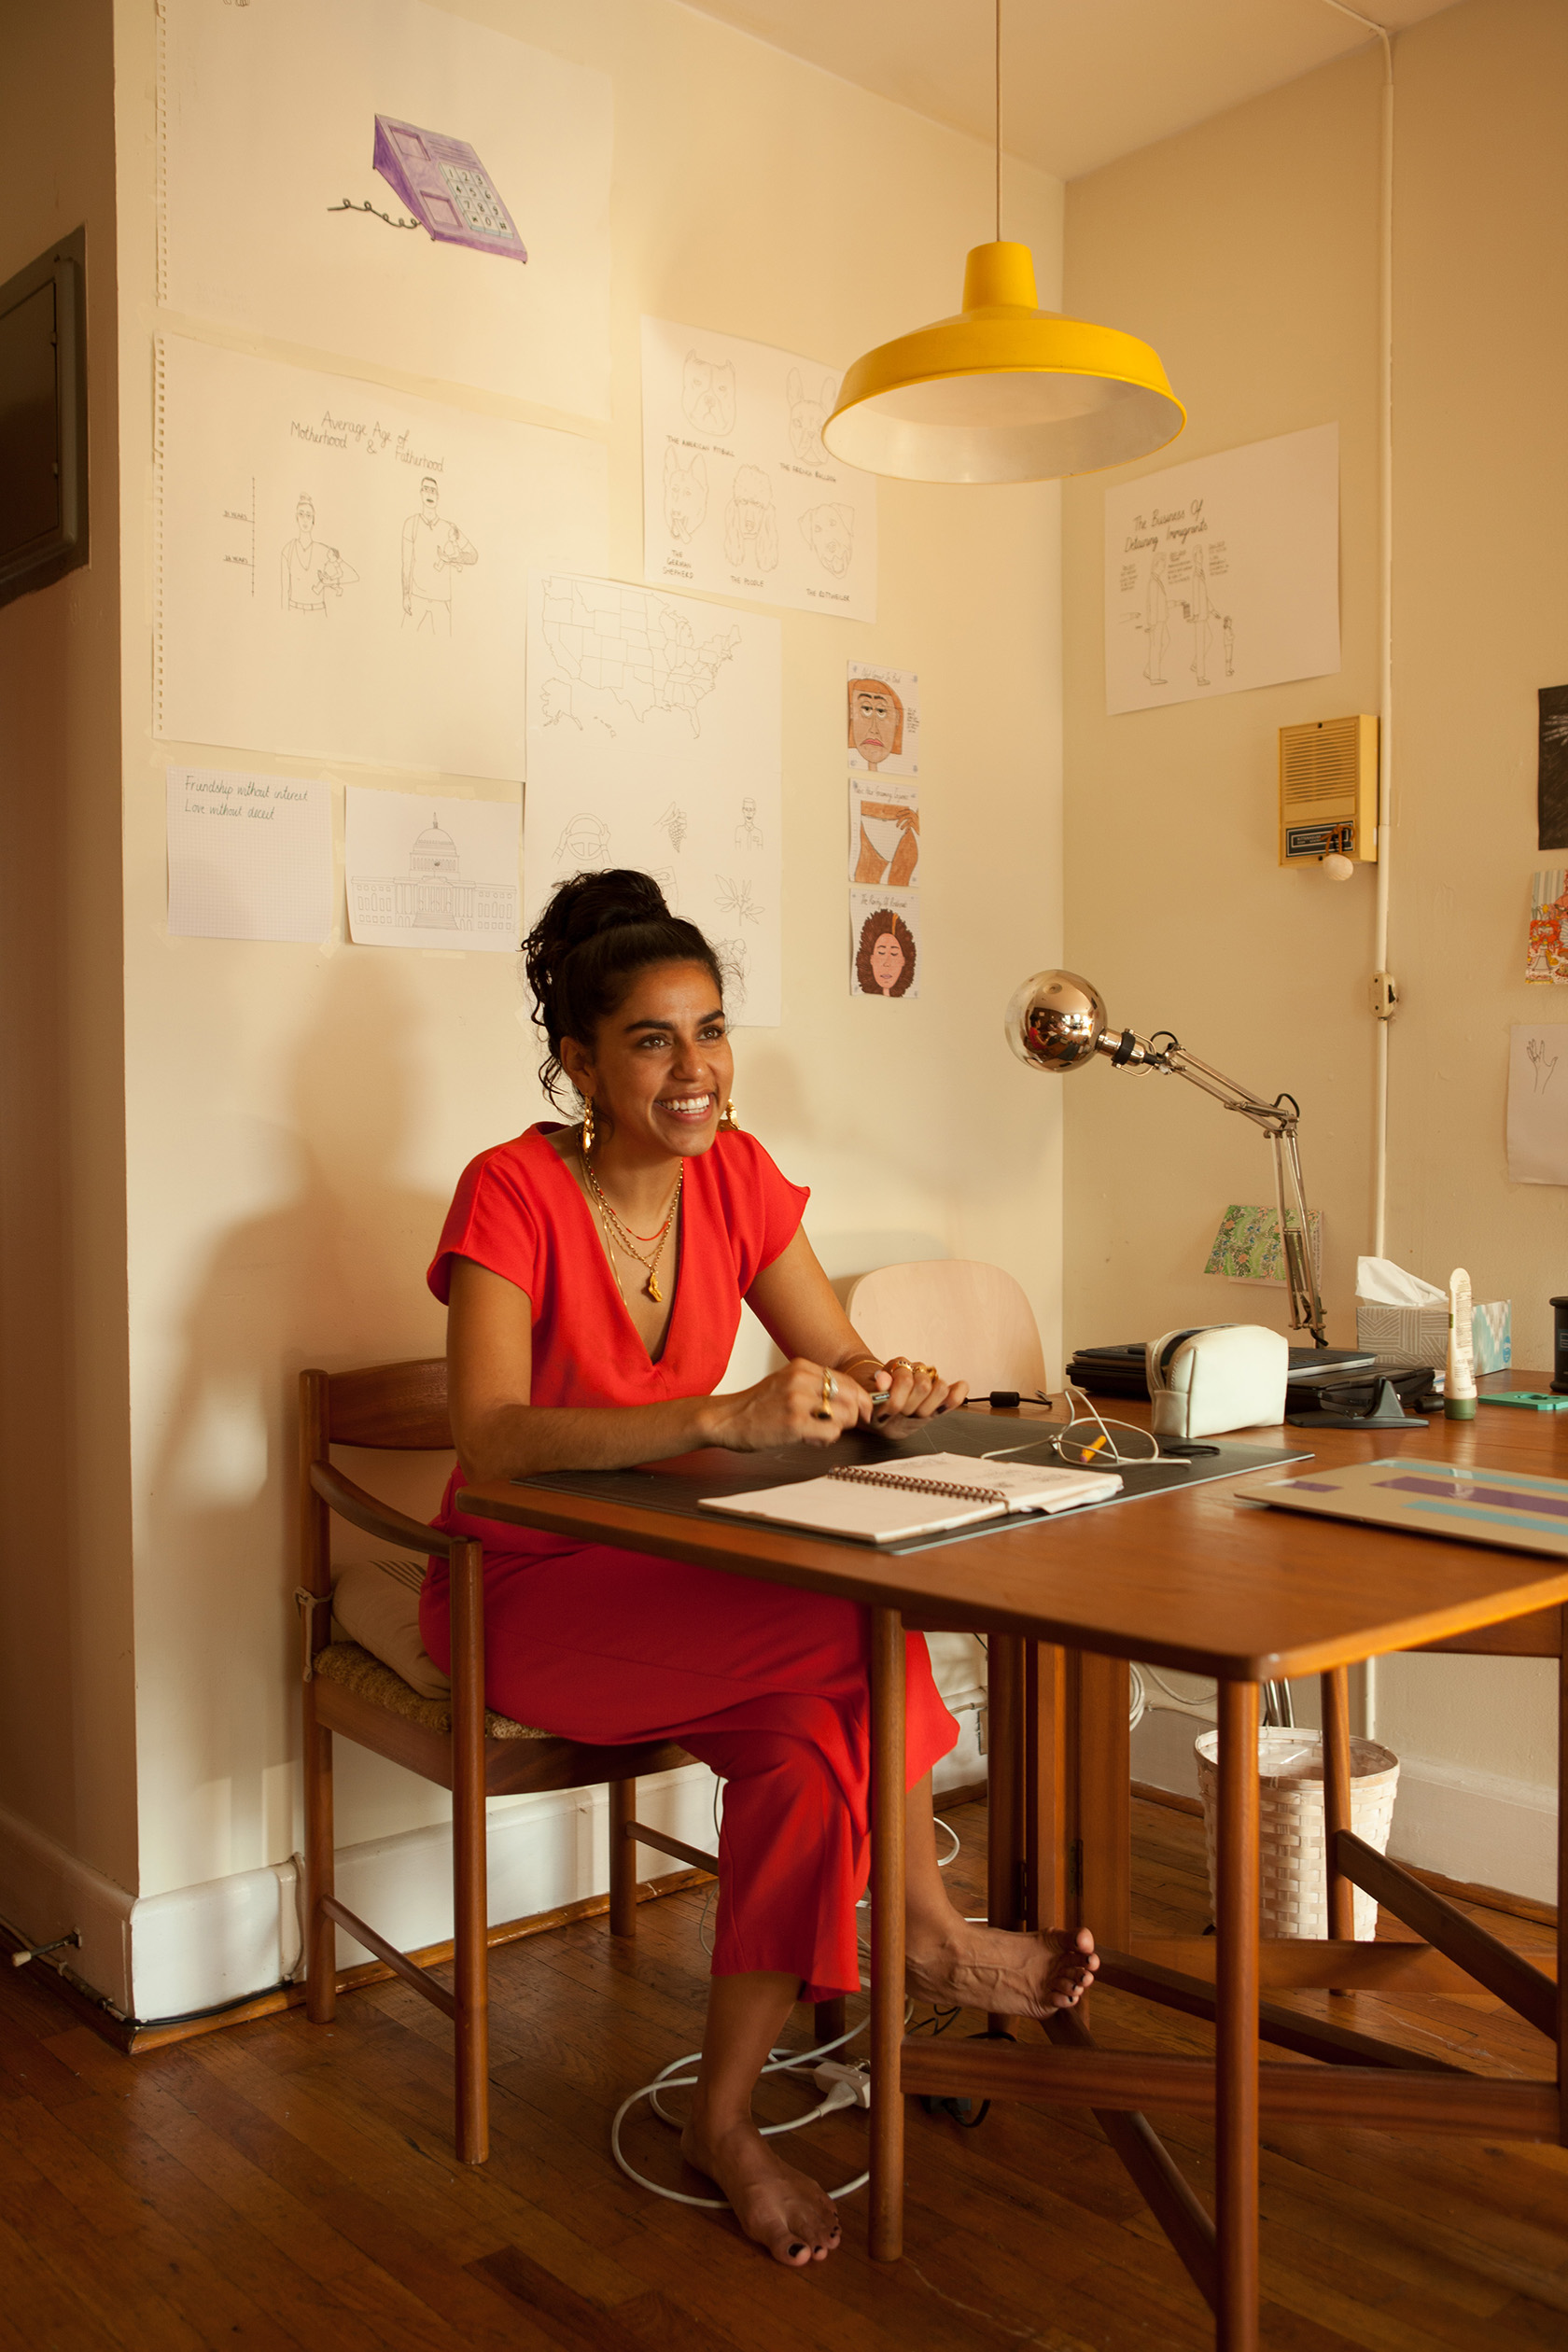 Mona Chalabi photographed in her workspace where sketches double as wallpaper.